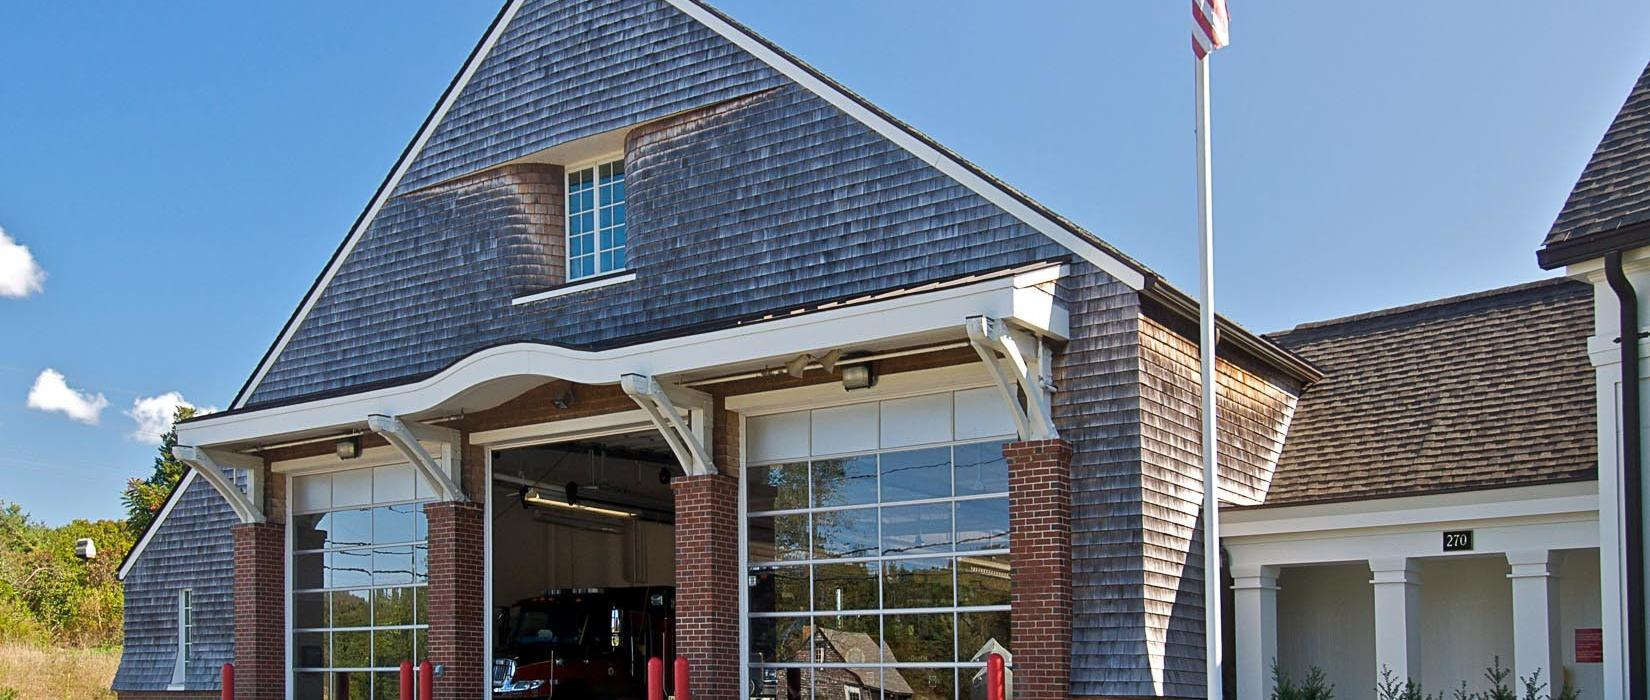 Centerville-Osterville-Marstons Mills Fire Rescue Station #3